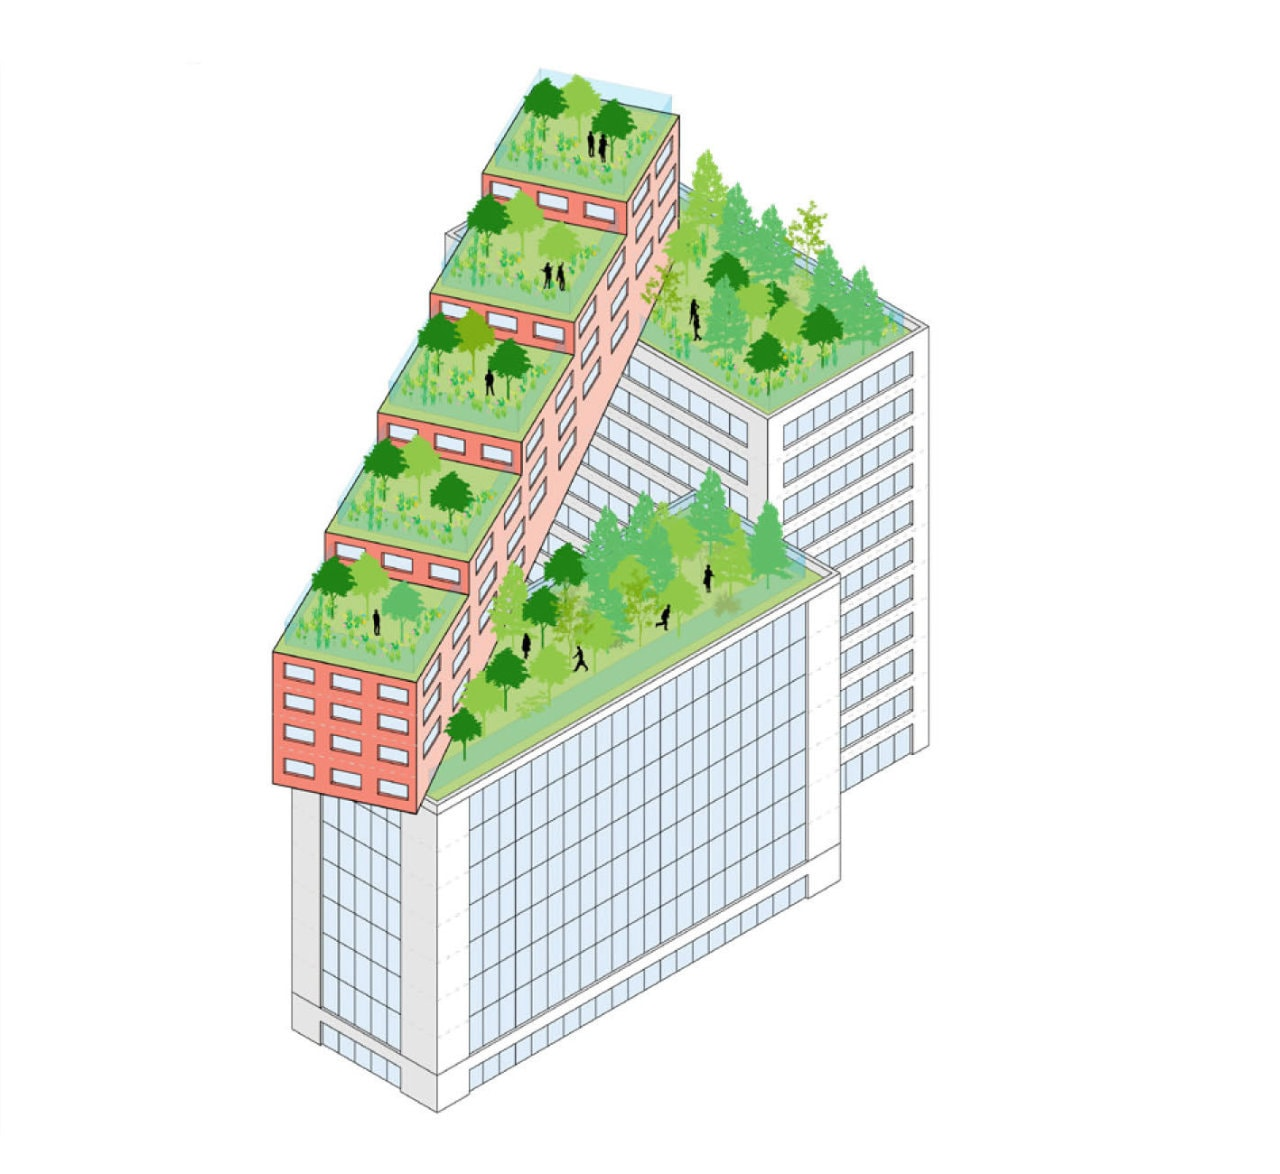 Terrace Building: The terrace building connects two buildings of different heights, which creates green terraces. The terrace building is ideal for living or working